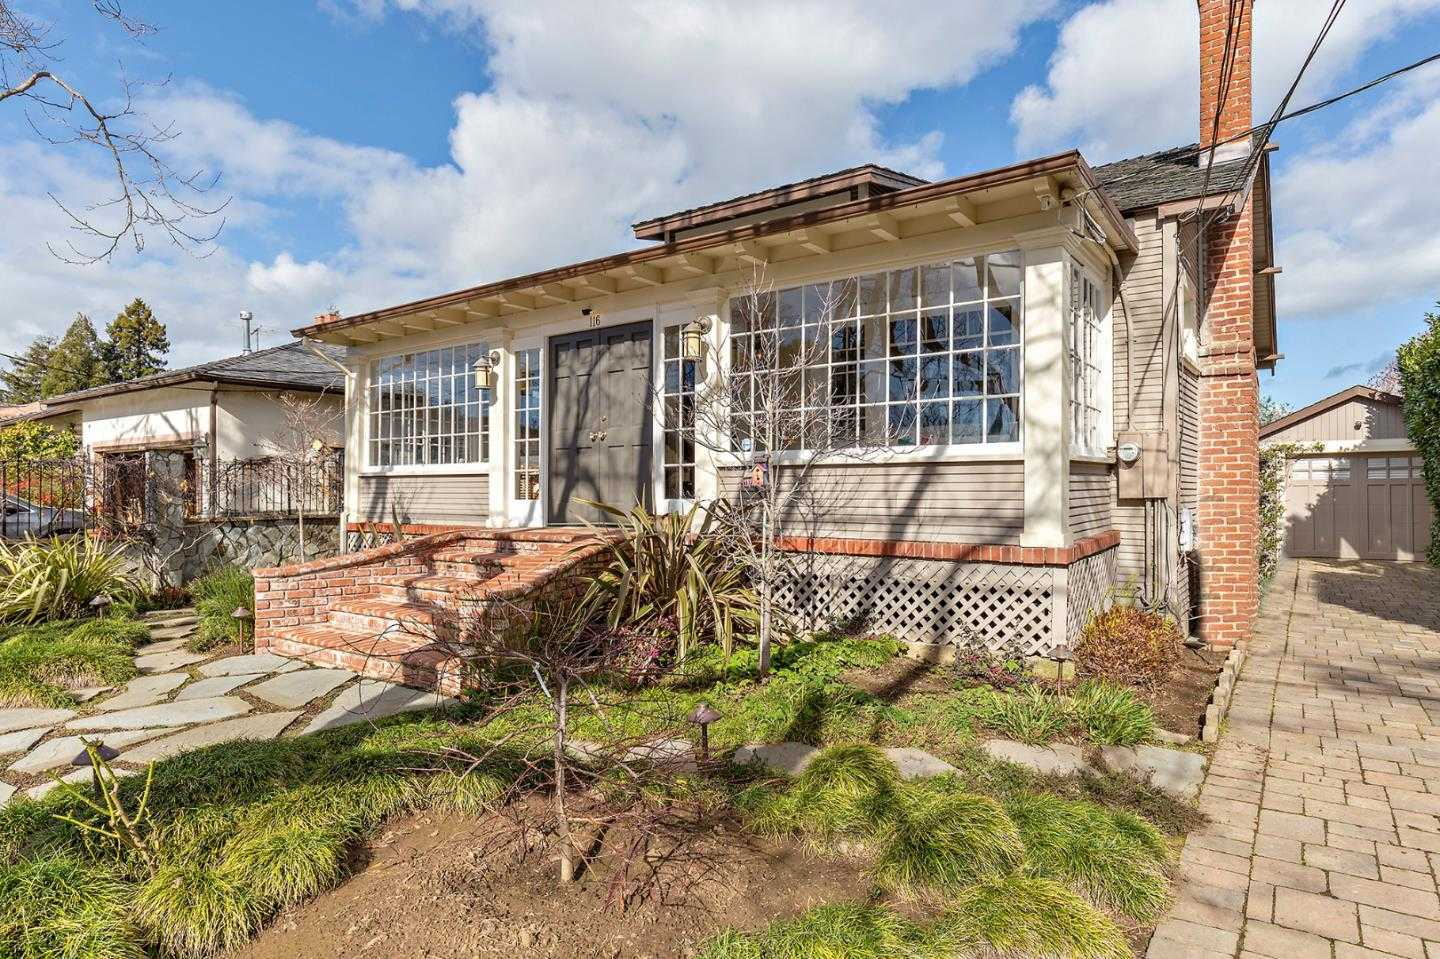 $2,099,000 - 3Br/2Ba -  for Sale in Burlingame